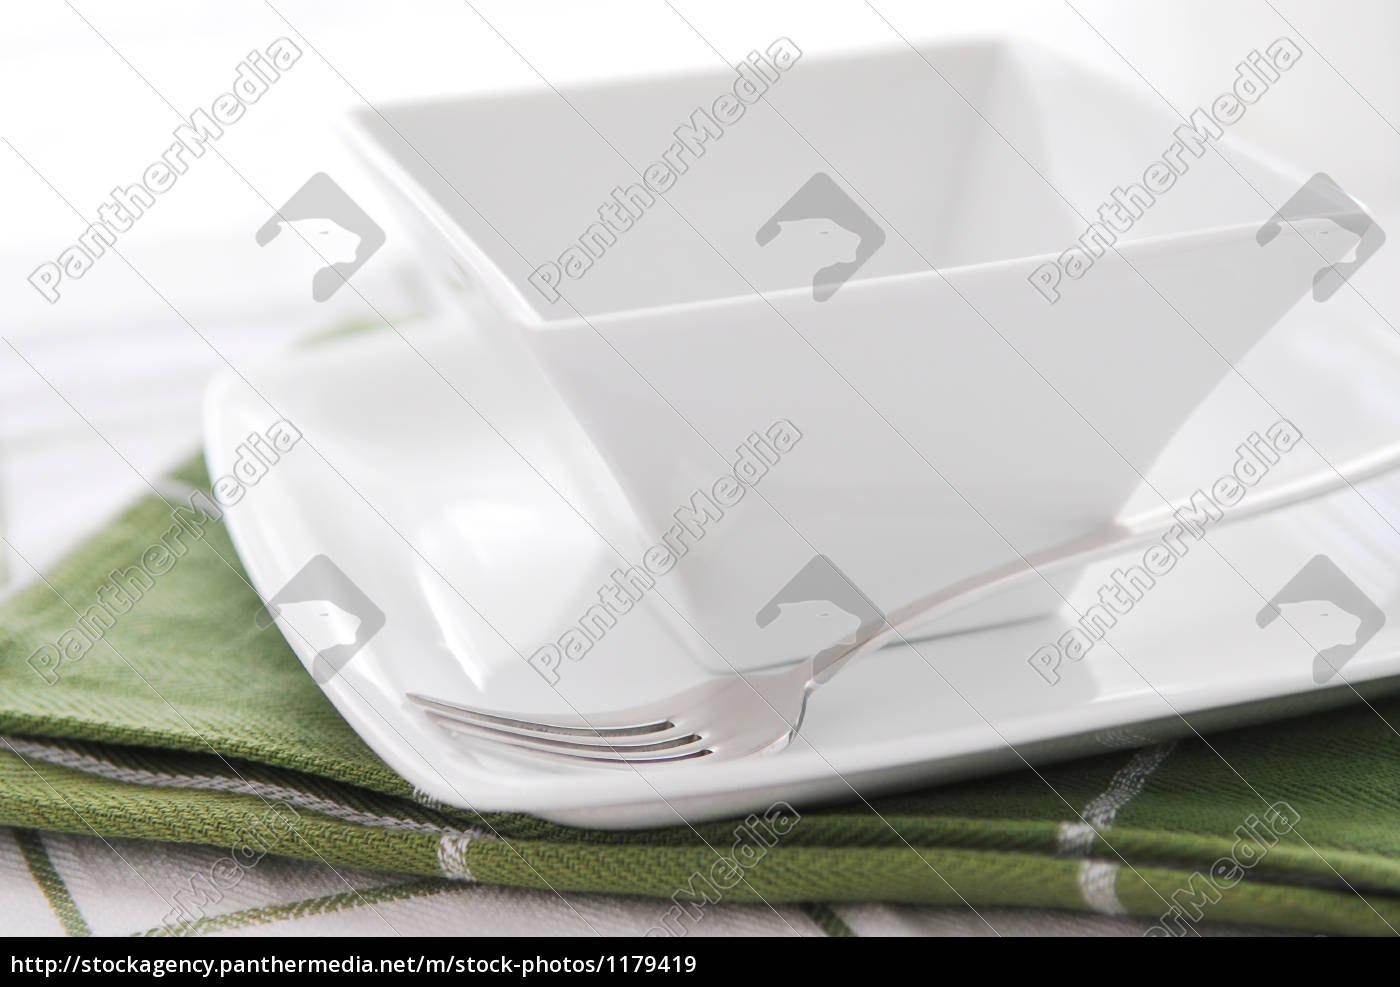 plate, fork, food, dish, meal, clean - 1179419